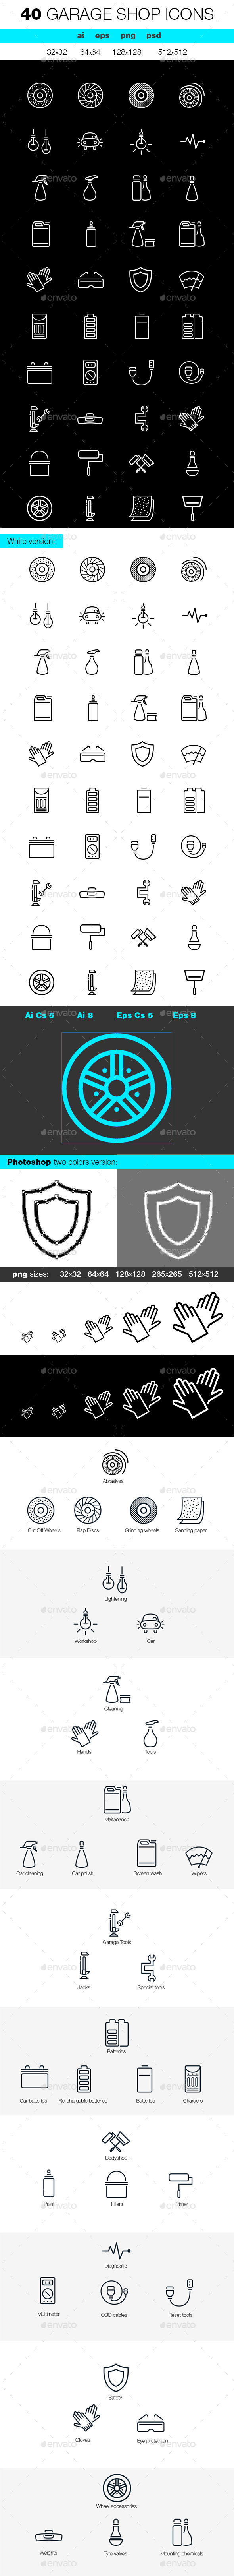 GraphicRiver Garage Shop Icons 10681612